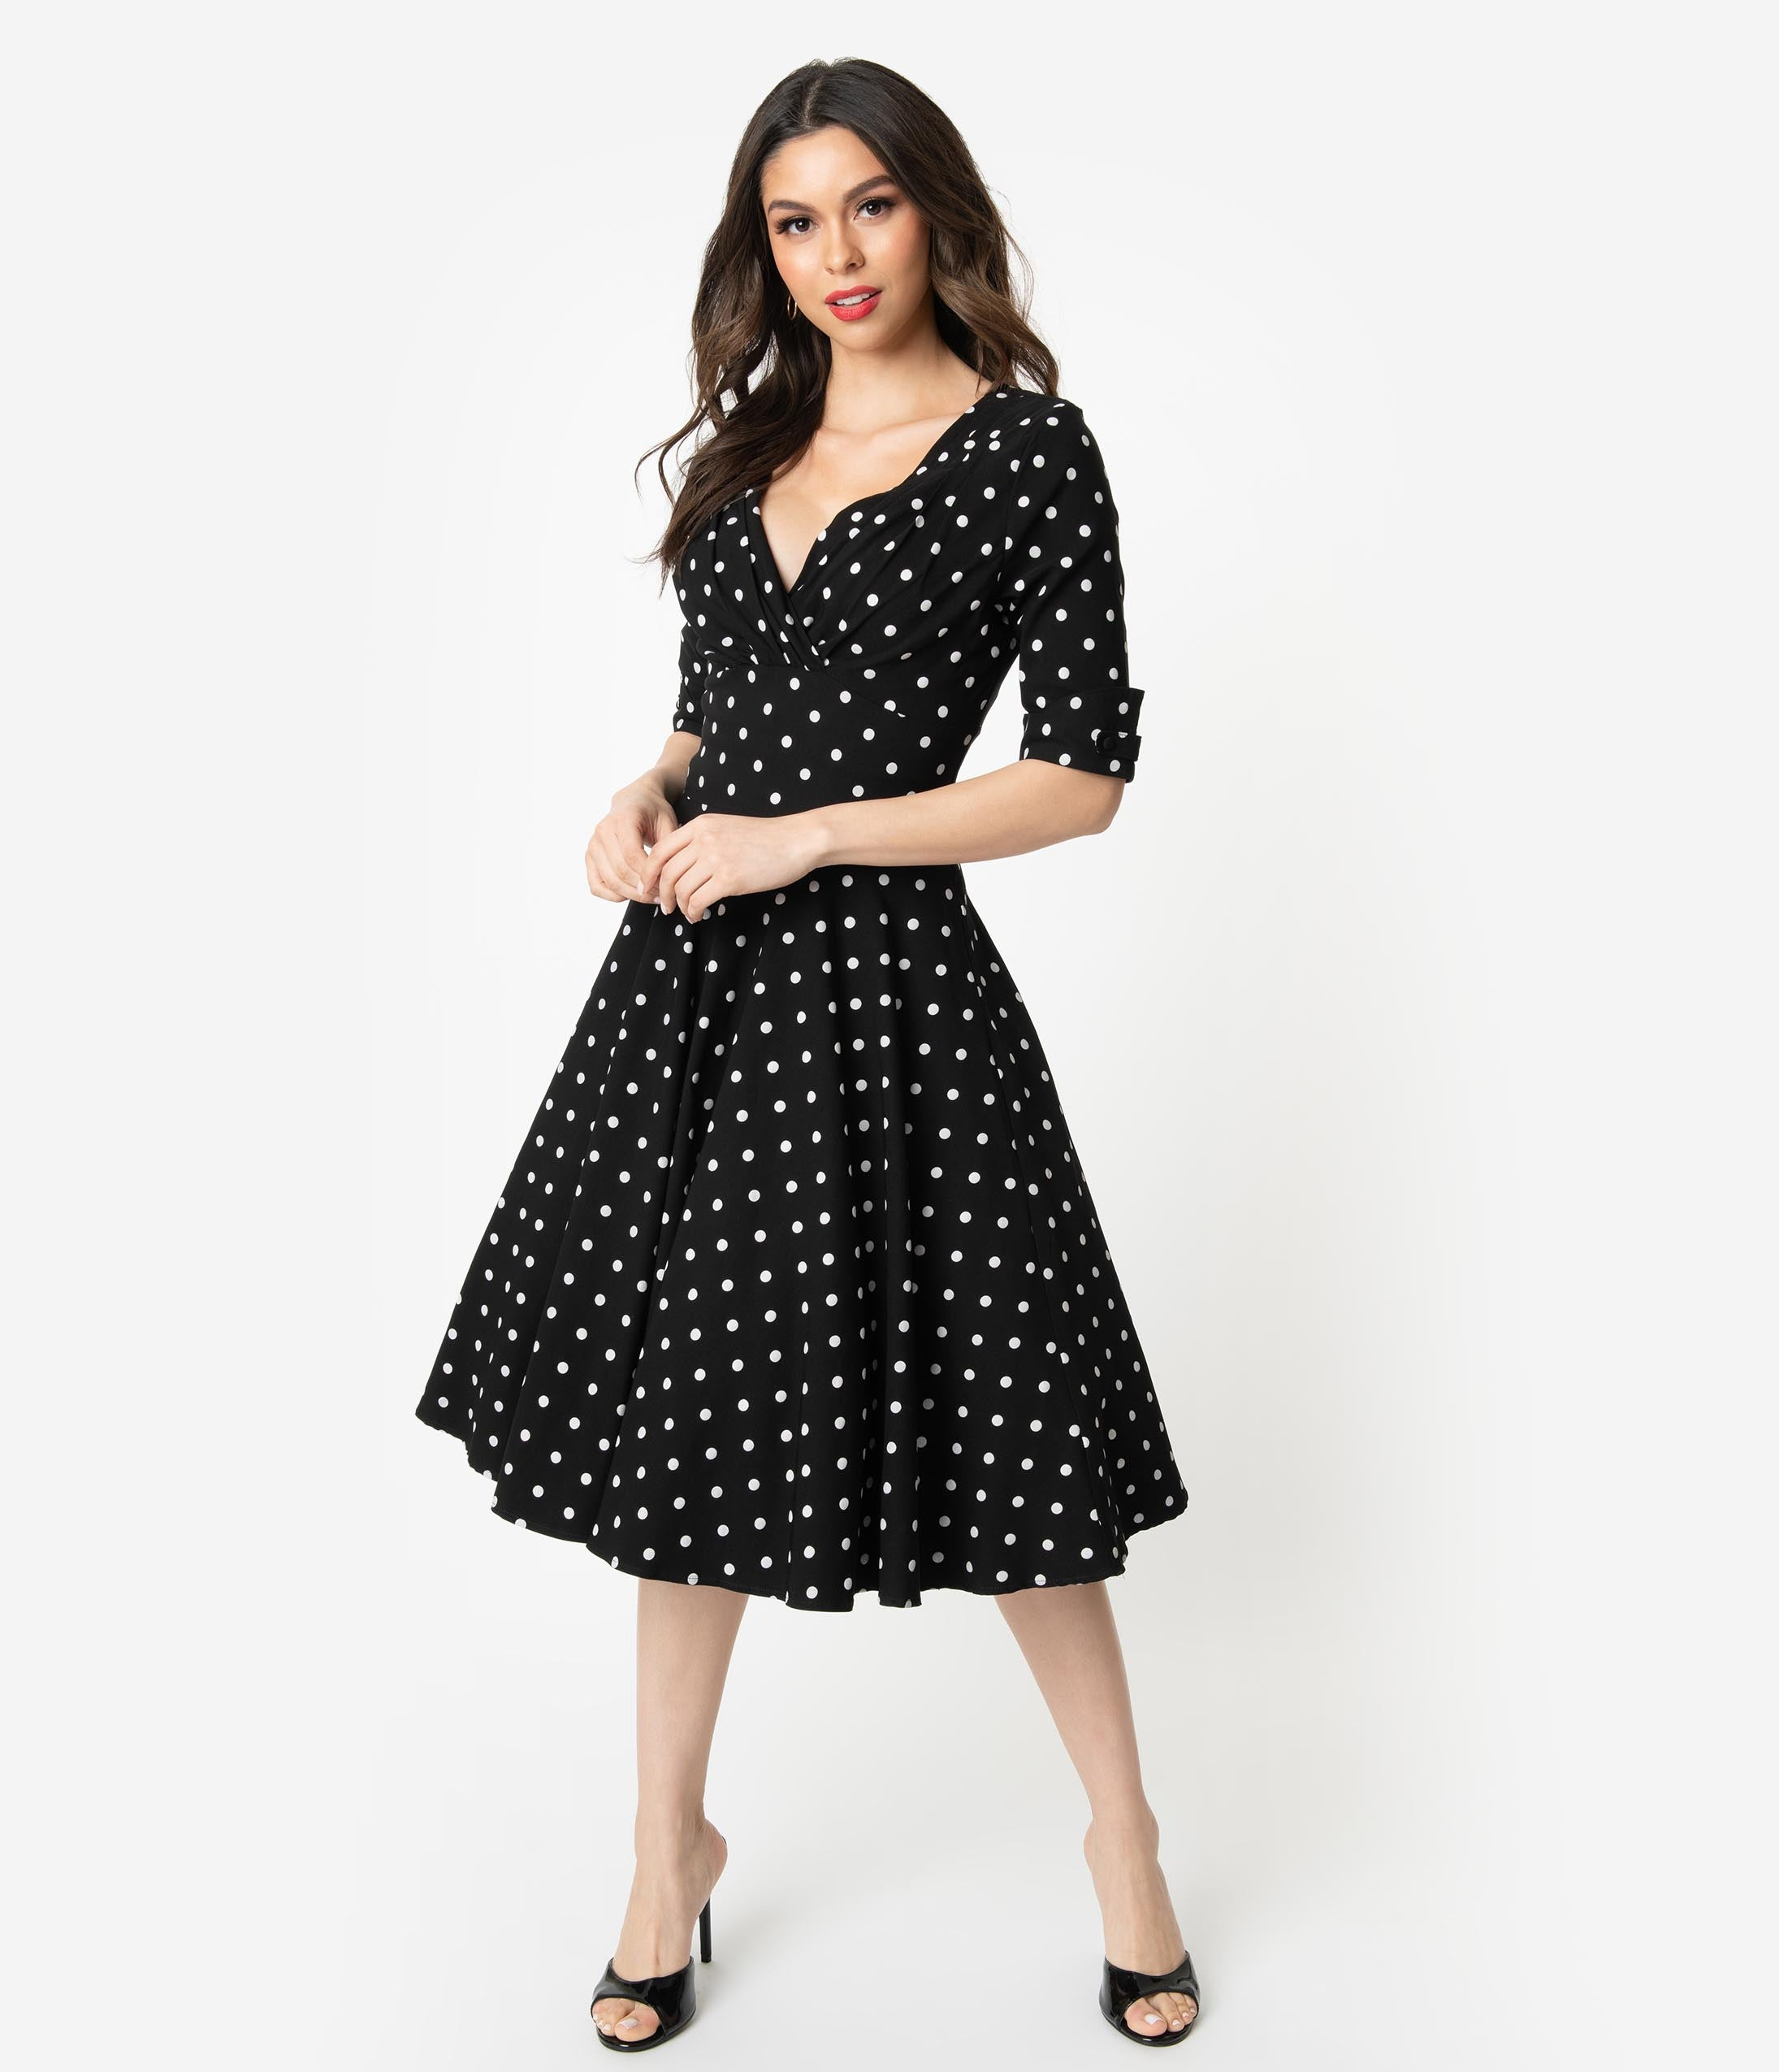 1950s Dresses, 50s Dresses | 1950s Style Dresses Unique Vintage 1950S Black  White Polka Dot Delores Swing Dress With Sleeves $92.00 AT vintagedancer.com